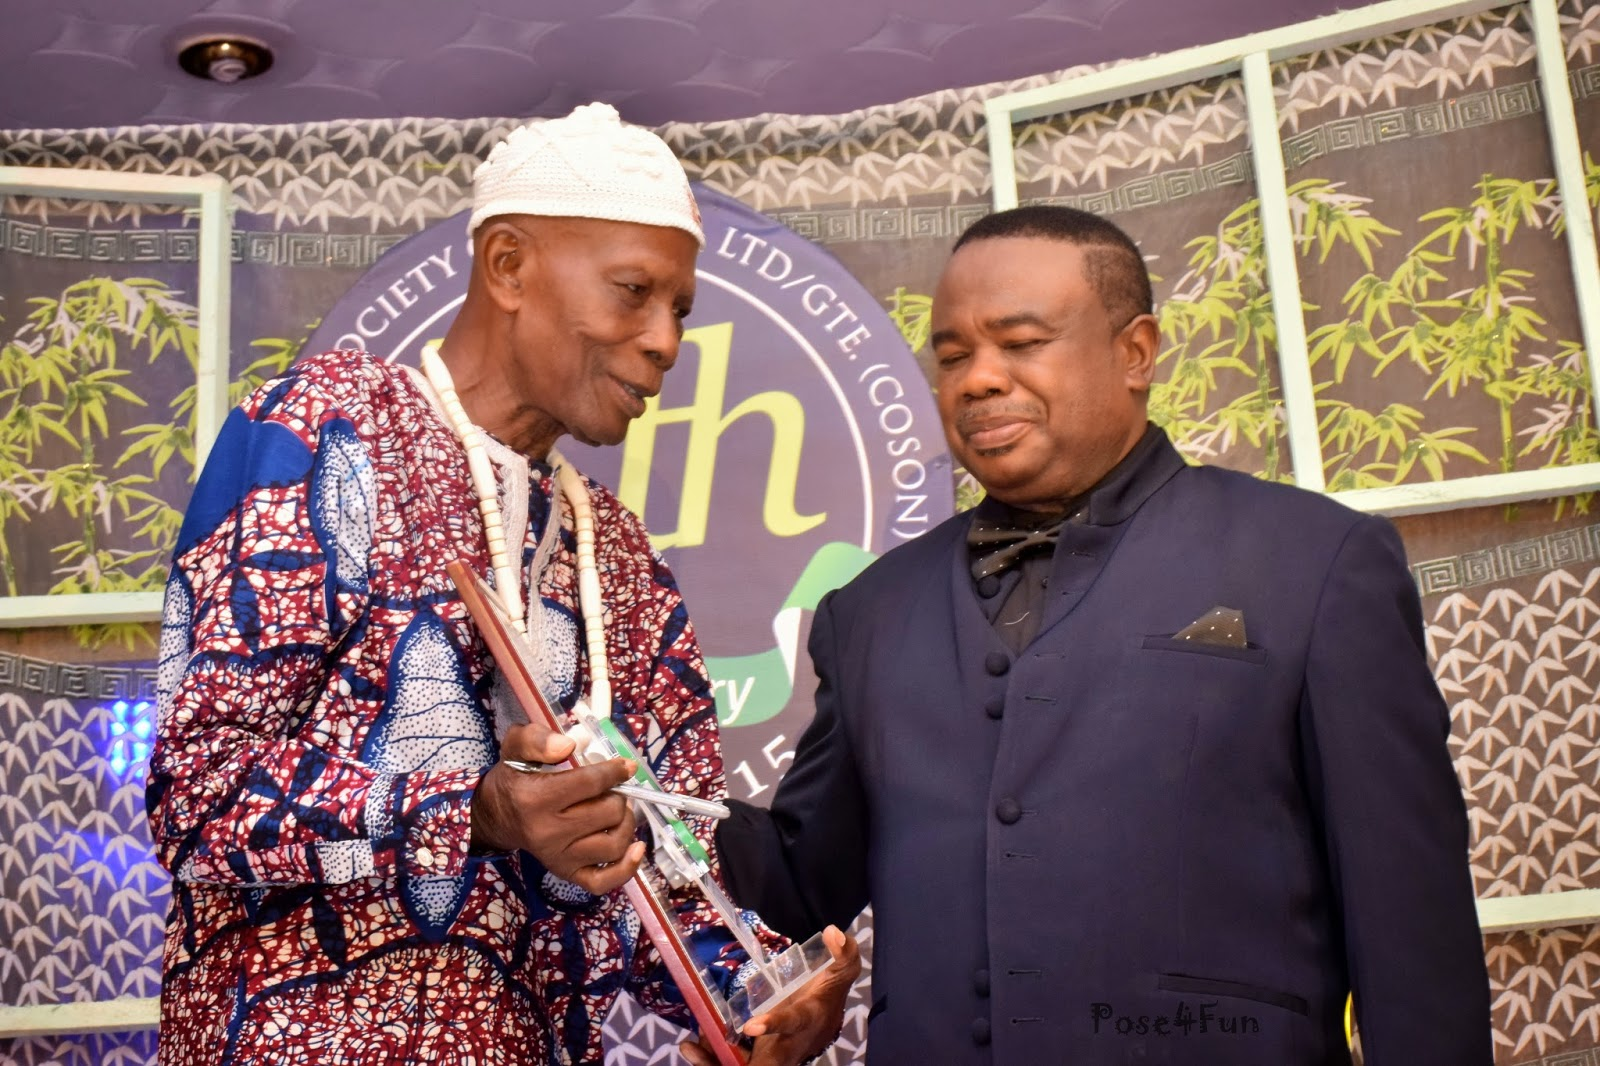 Veteran highlife musician, Emmanuel Ntia dies at 94